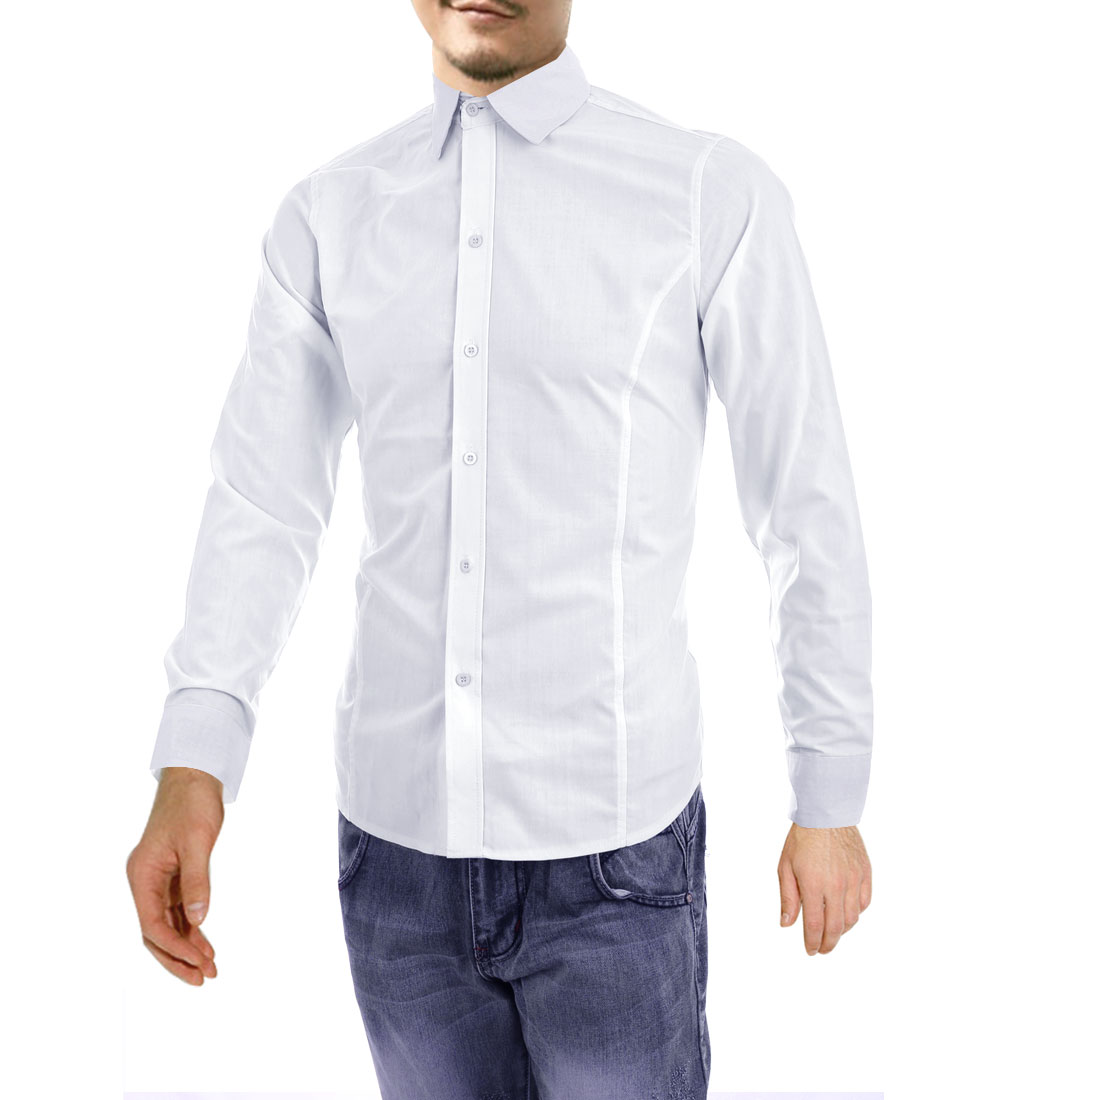 Men Button Closure Splice Collar Casual Shirt White M